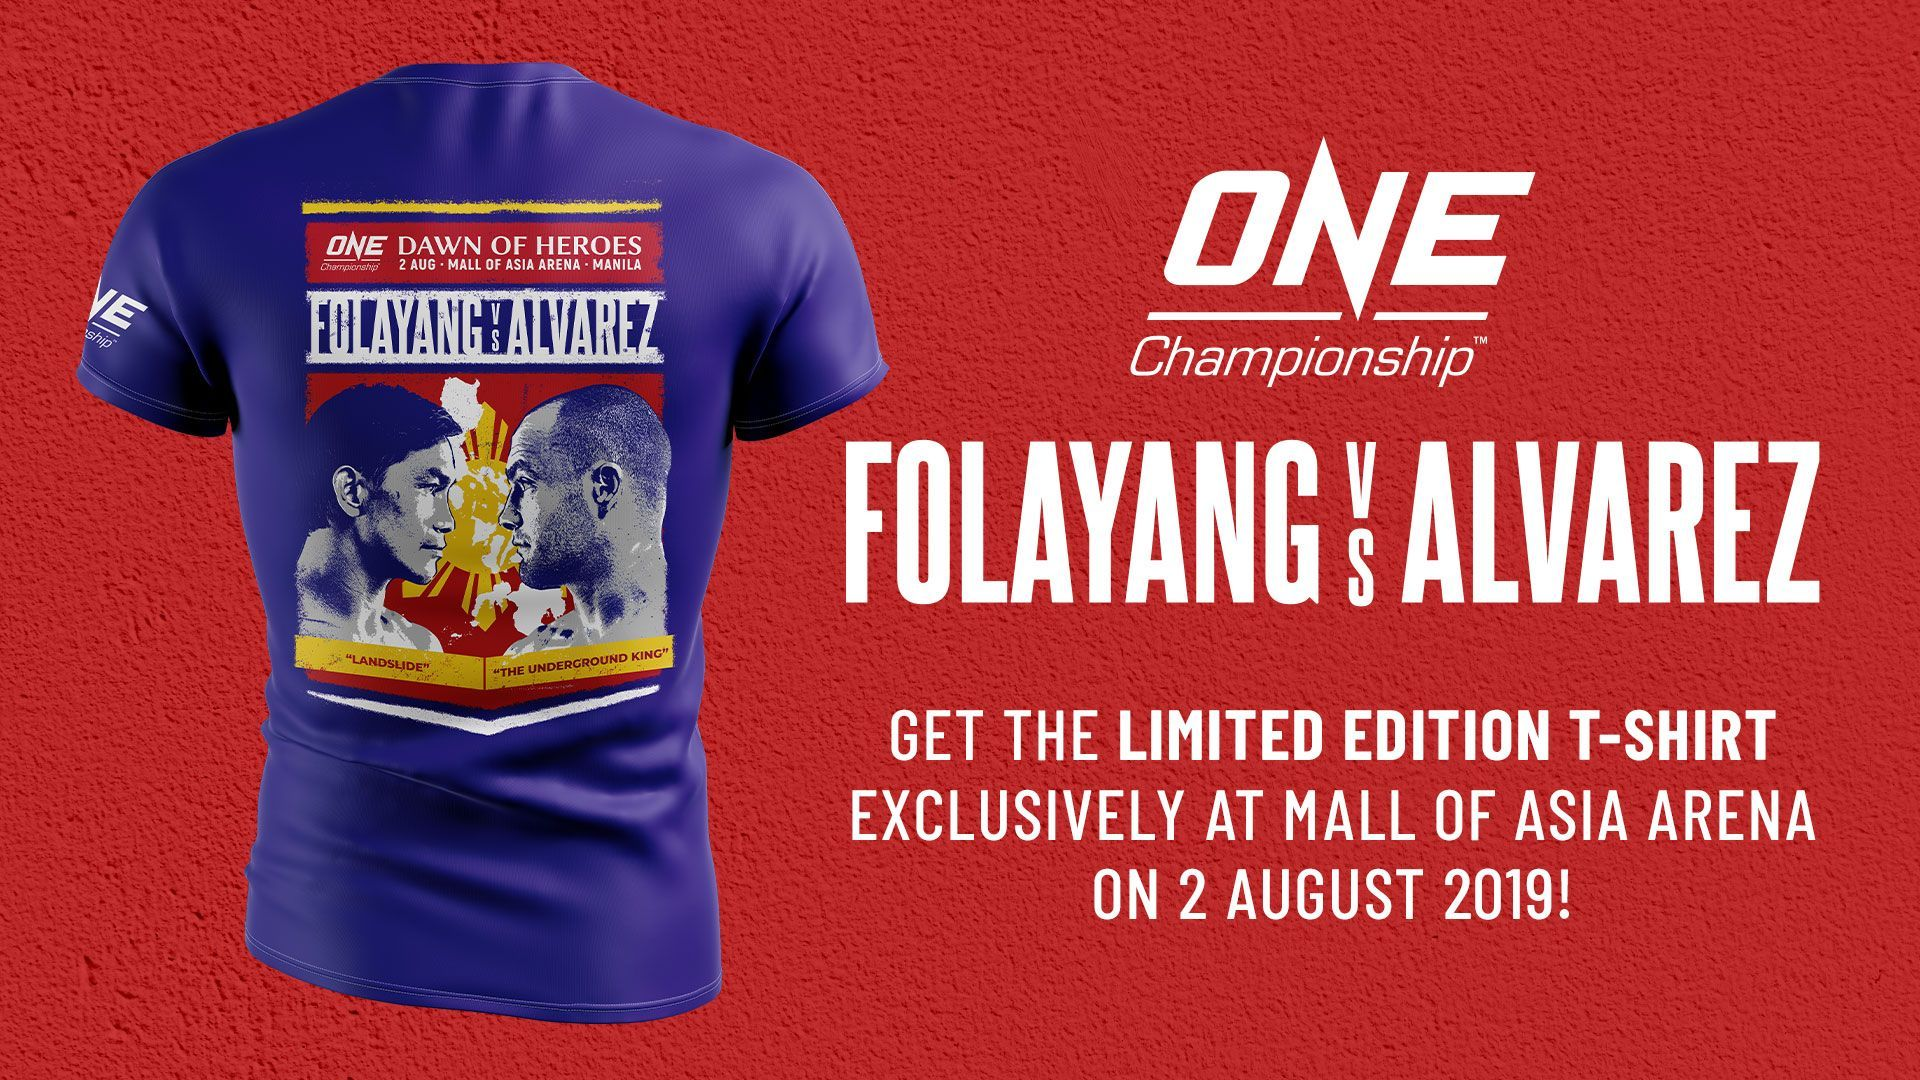 eduard folayang eddie alvarez special edition shirt manila philippines Dawn Of Heroes